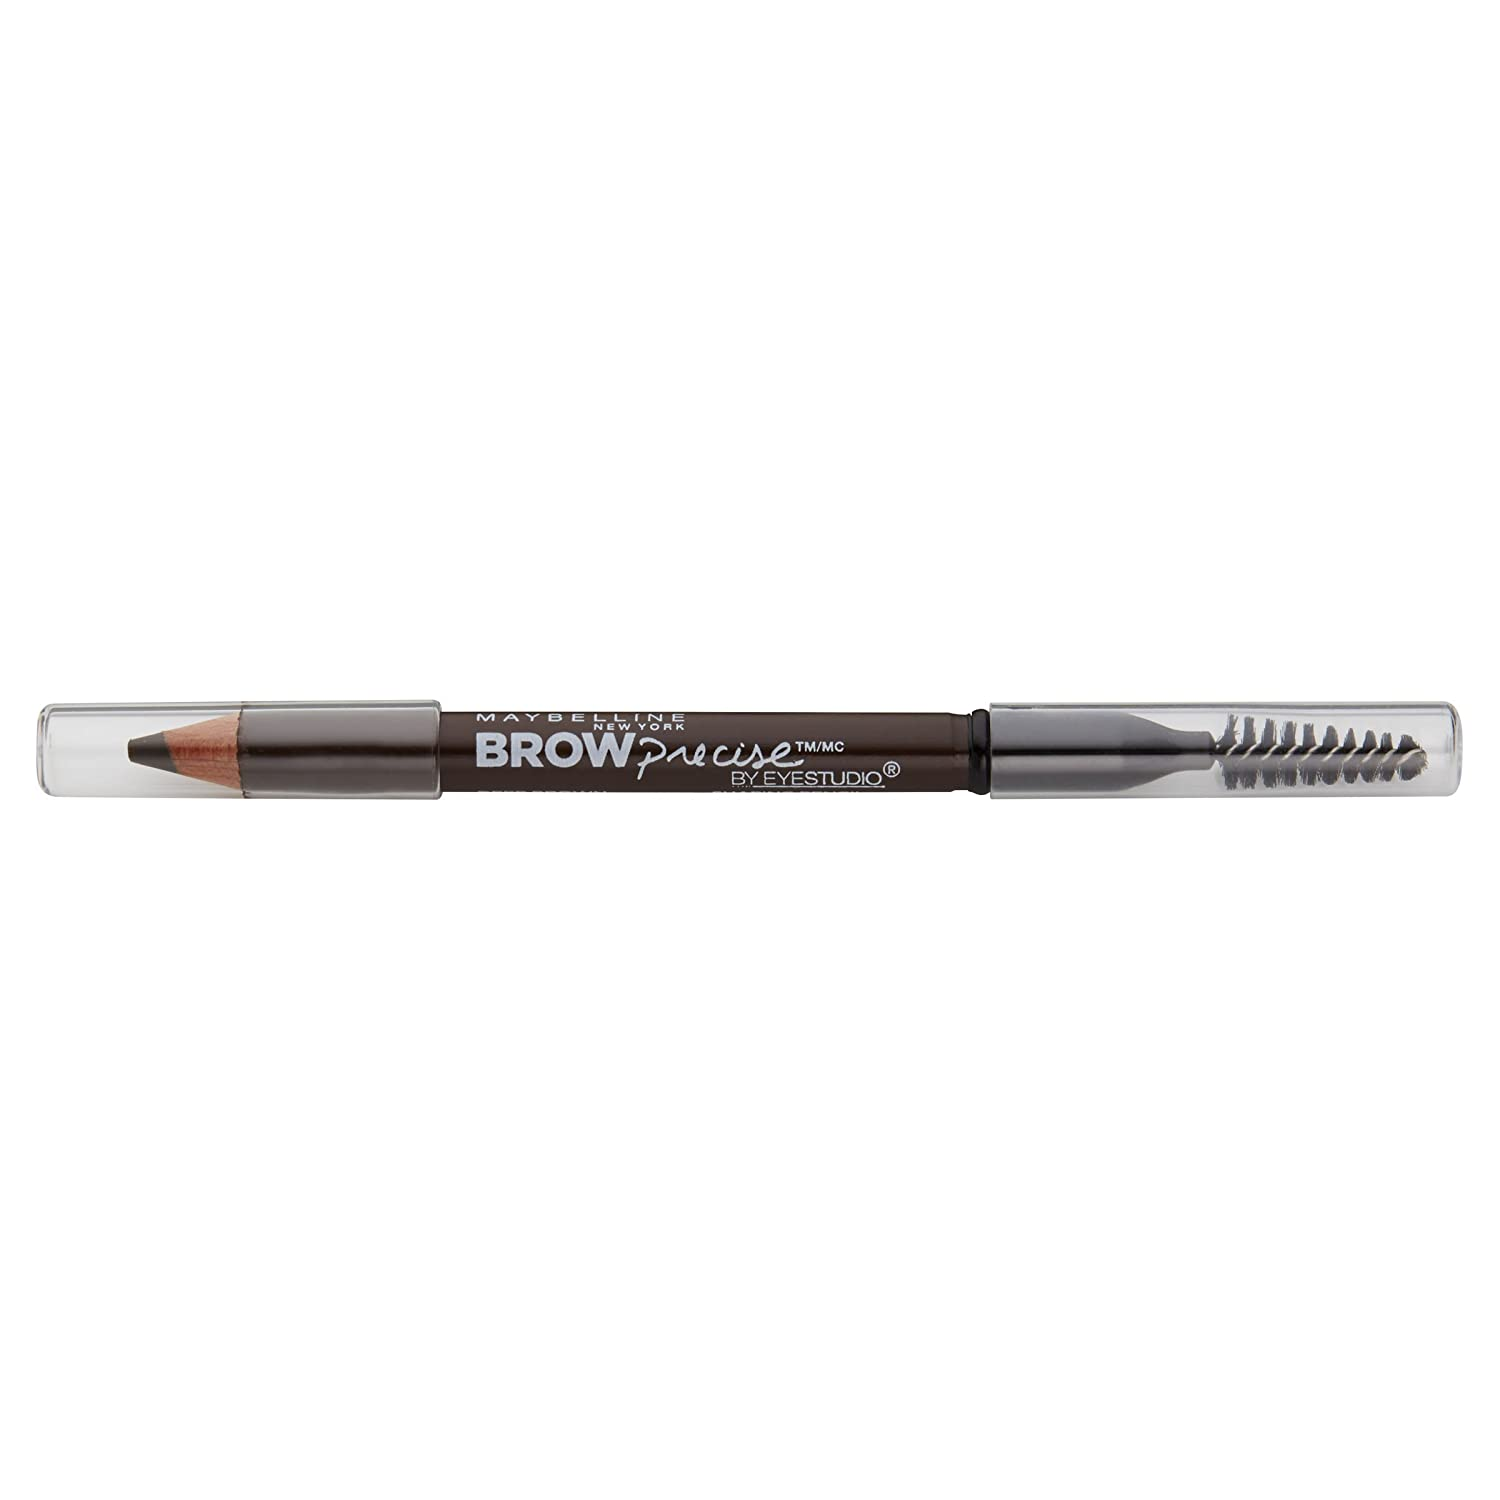 WHOLESALE MAYBELLINE BROW PRECISE SHAPING EYEBROW PENCIL - DEEP BROWN 260 - 48 PIECE LOT